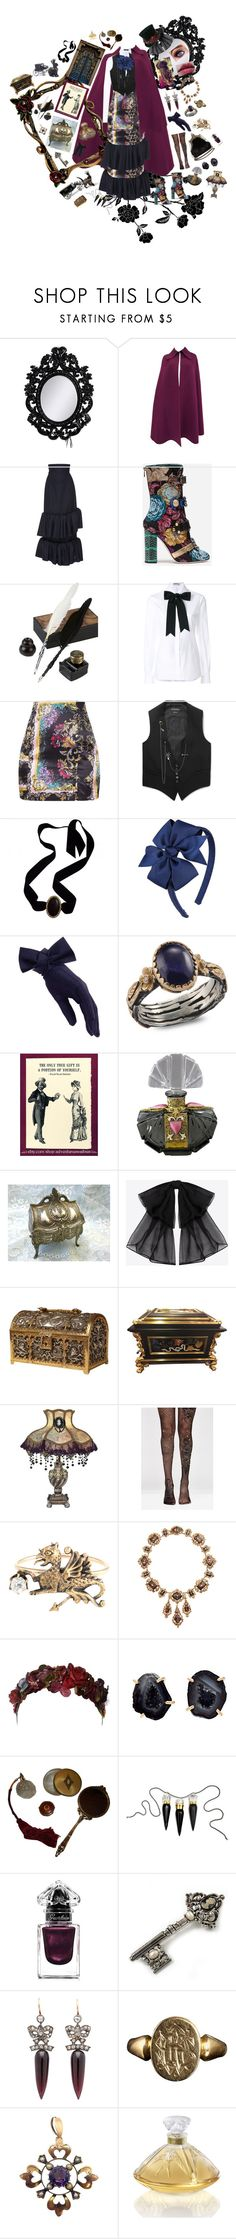 """""""high society witch"""" by astral-leech ❤ liked on Polyvore featuring Laurence Llewelyn-Bowen, Jacquemus, Dolce&Gabbana, Alexander McQueen, Yves Saint Laurent, Black, Emma Chapman, Ana Accessories, Olivia Collings Antique Jewelry and Her Curious Nature"""